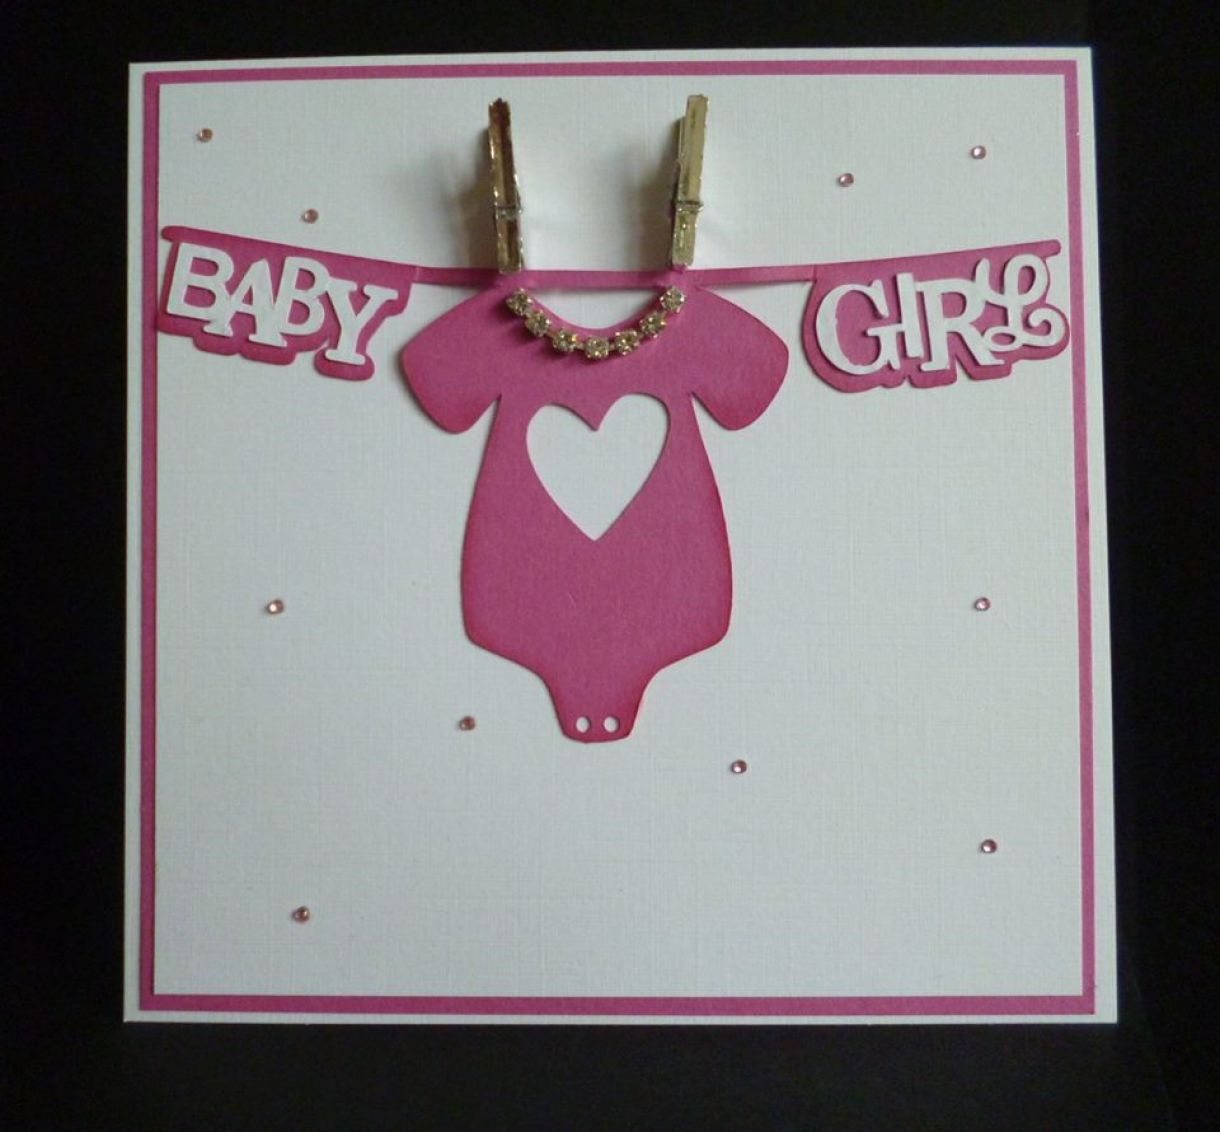 New Baby Girl Gift Ideas Uk : New baby handmade card ideas and inspiration